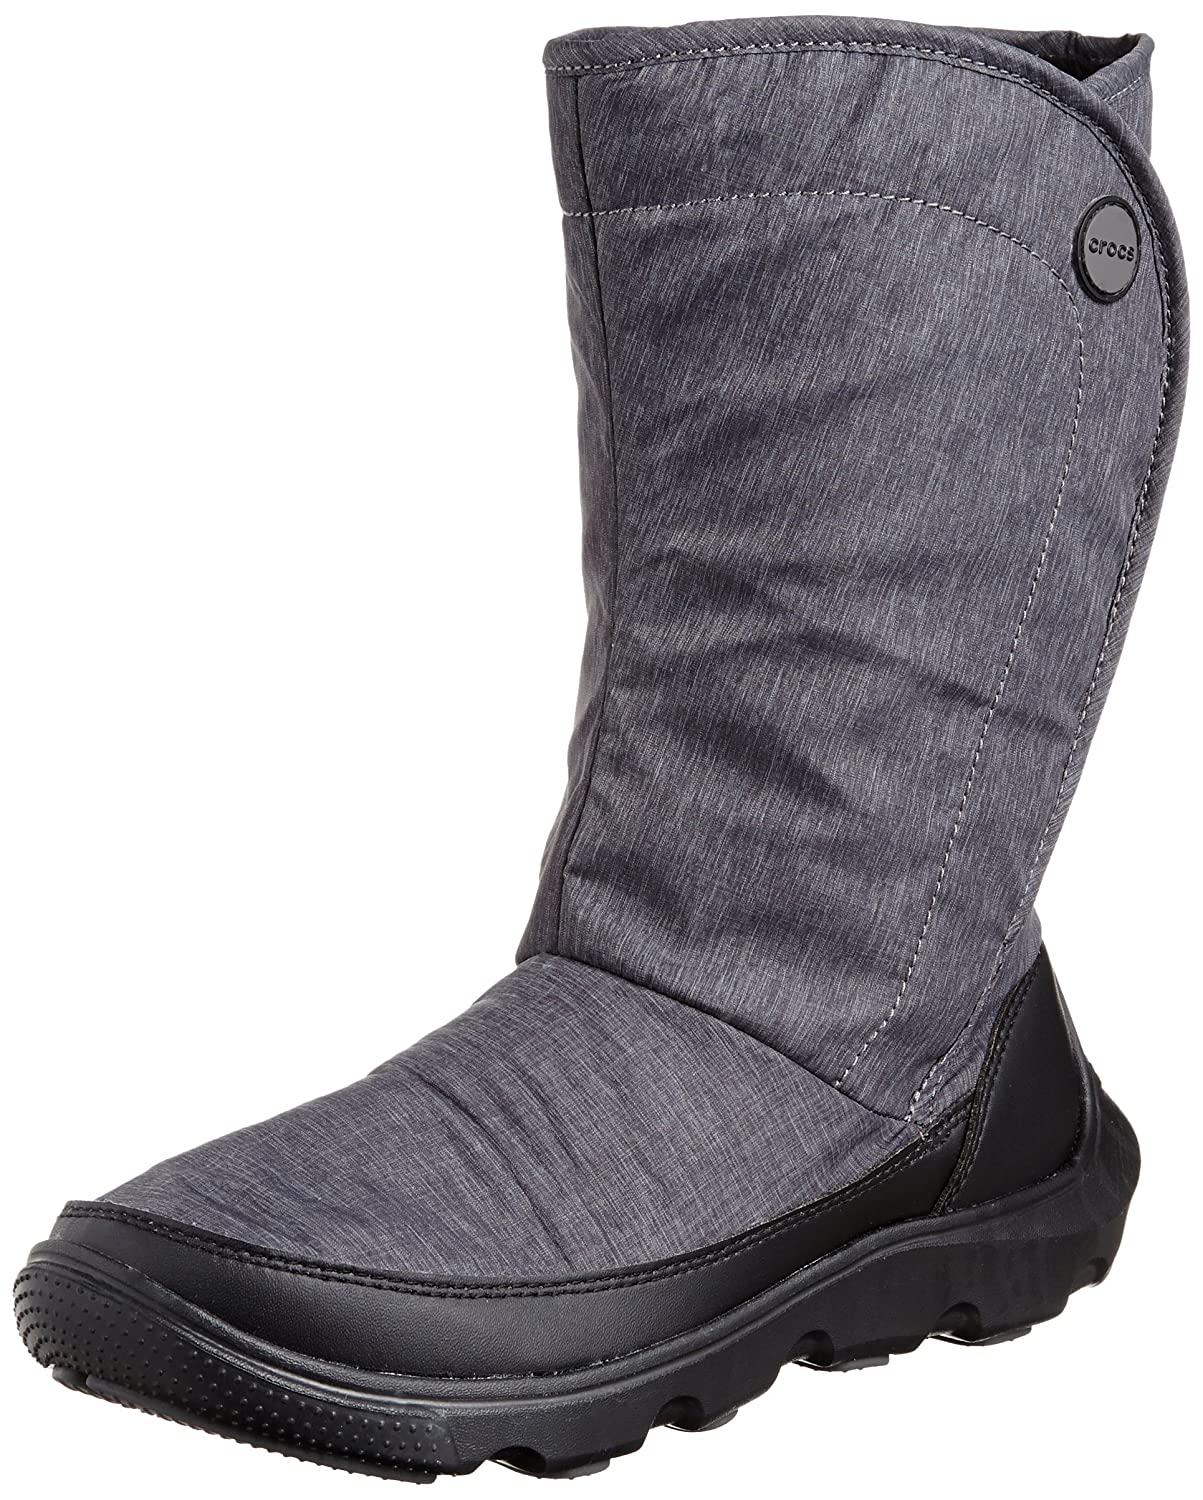 Crocs Duet Busy Day Boot W, Bottes Femme Duet Femme Busy Noir (Black/Black) ae190c8 - latesttechnology.space